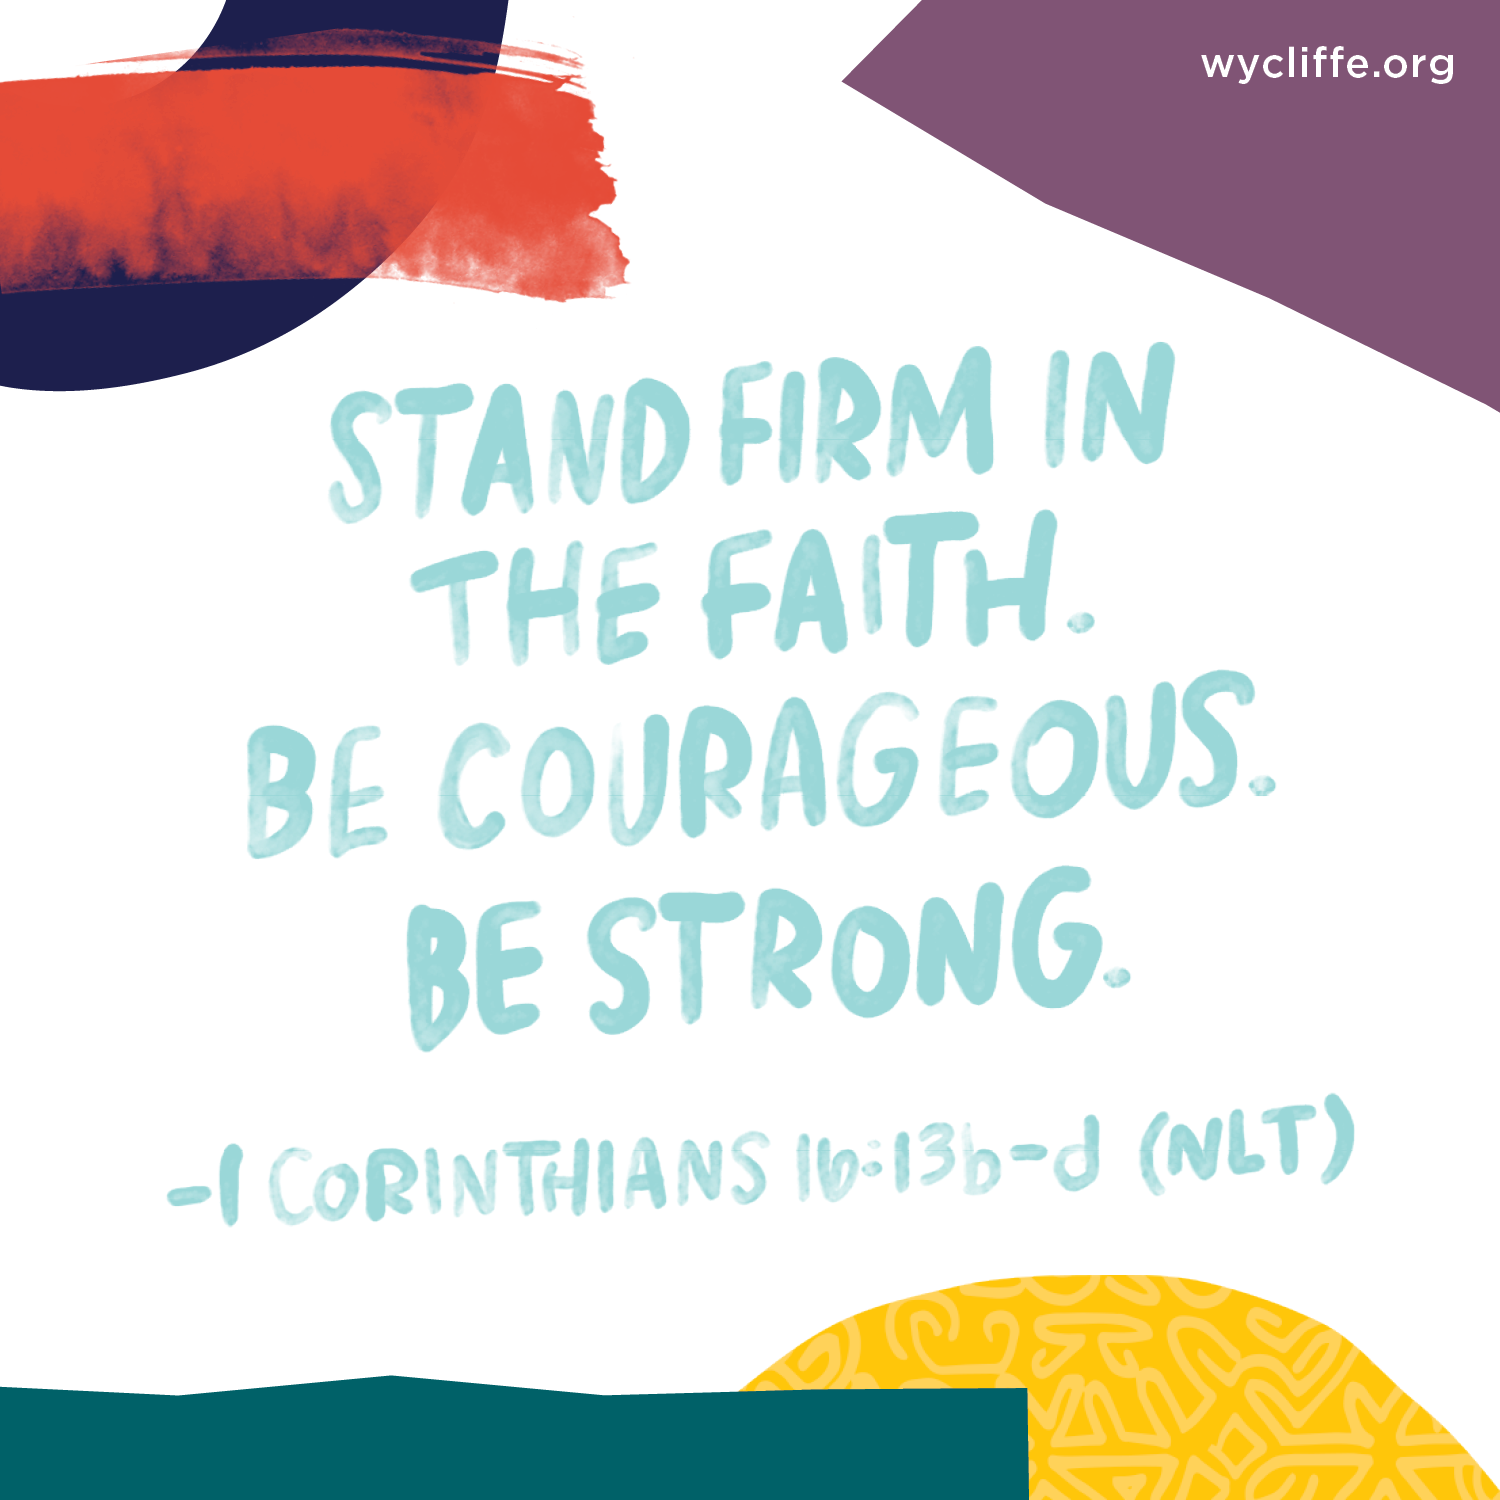 Stand firm in the faith. Be courageous. Be strong. - 1 Corinthians 16:13b-d (NLT)